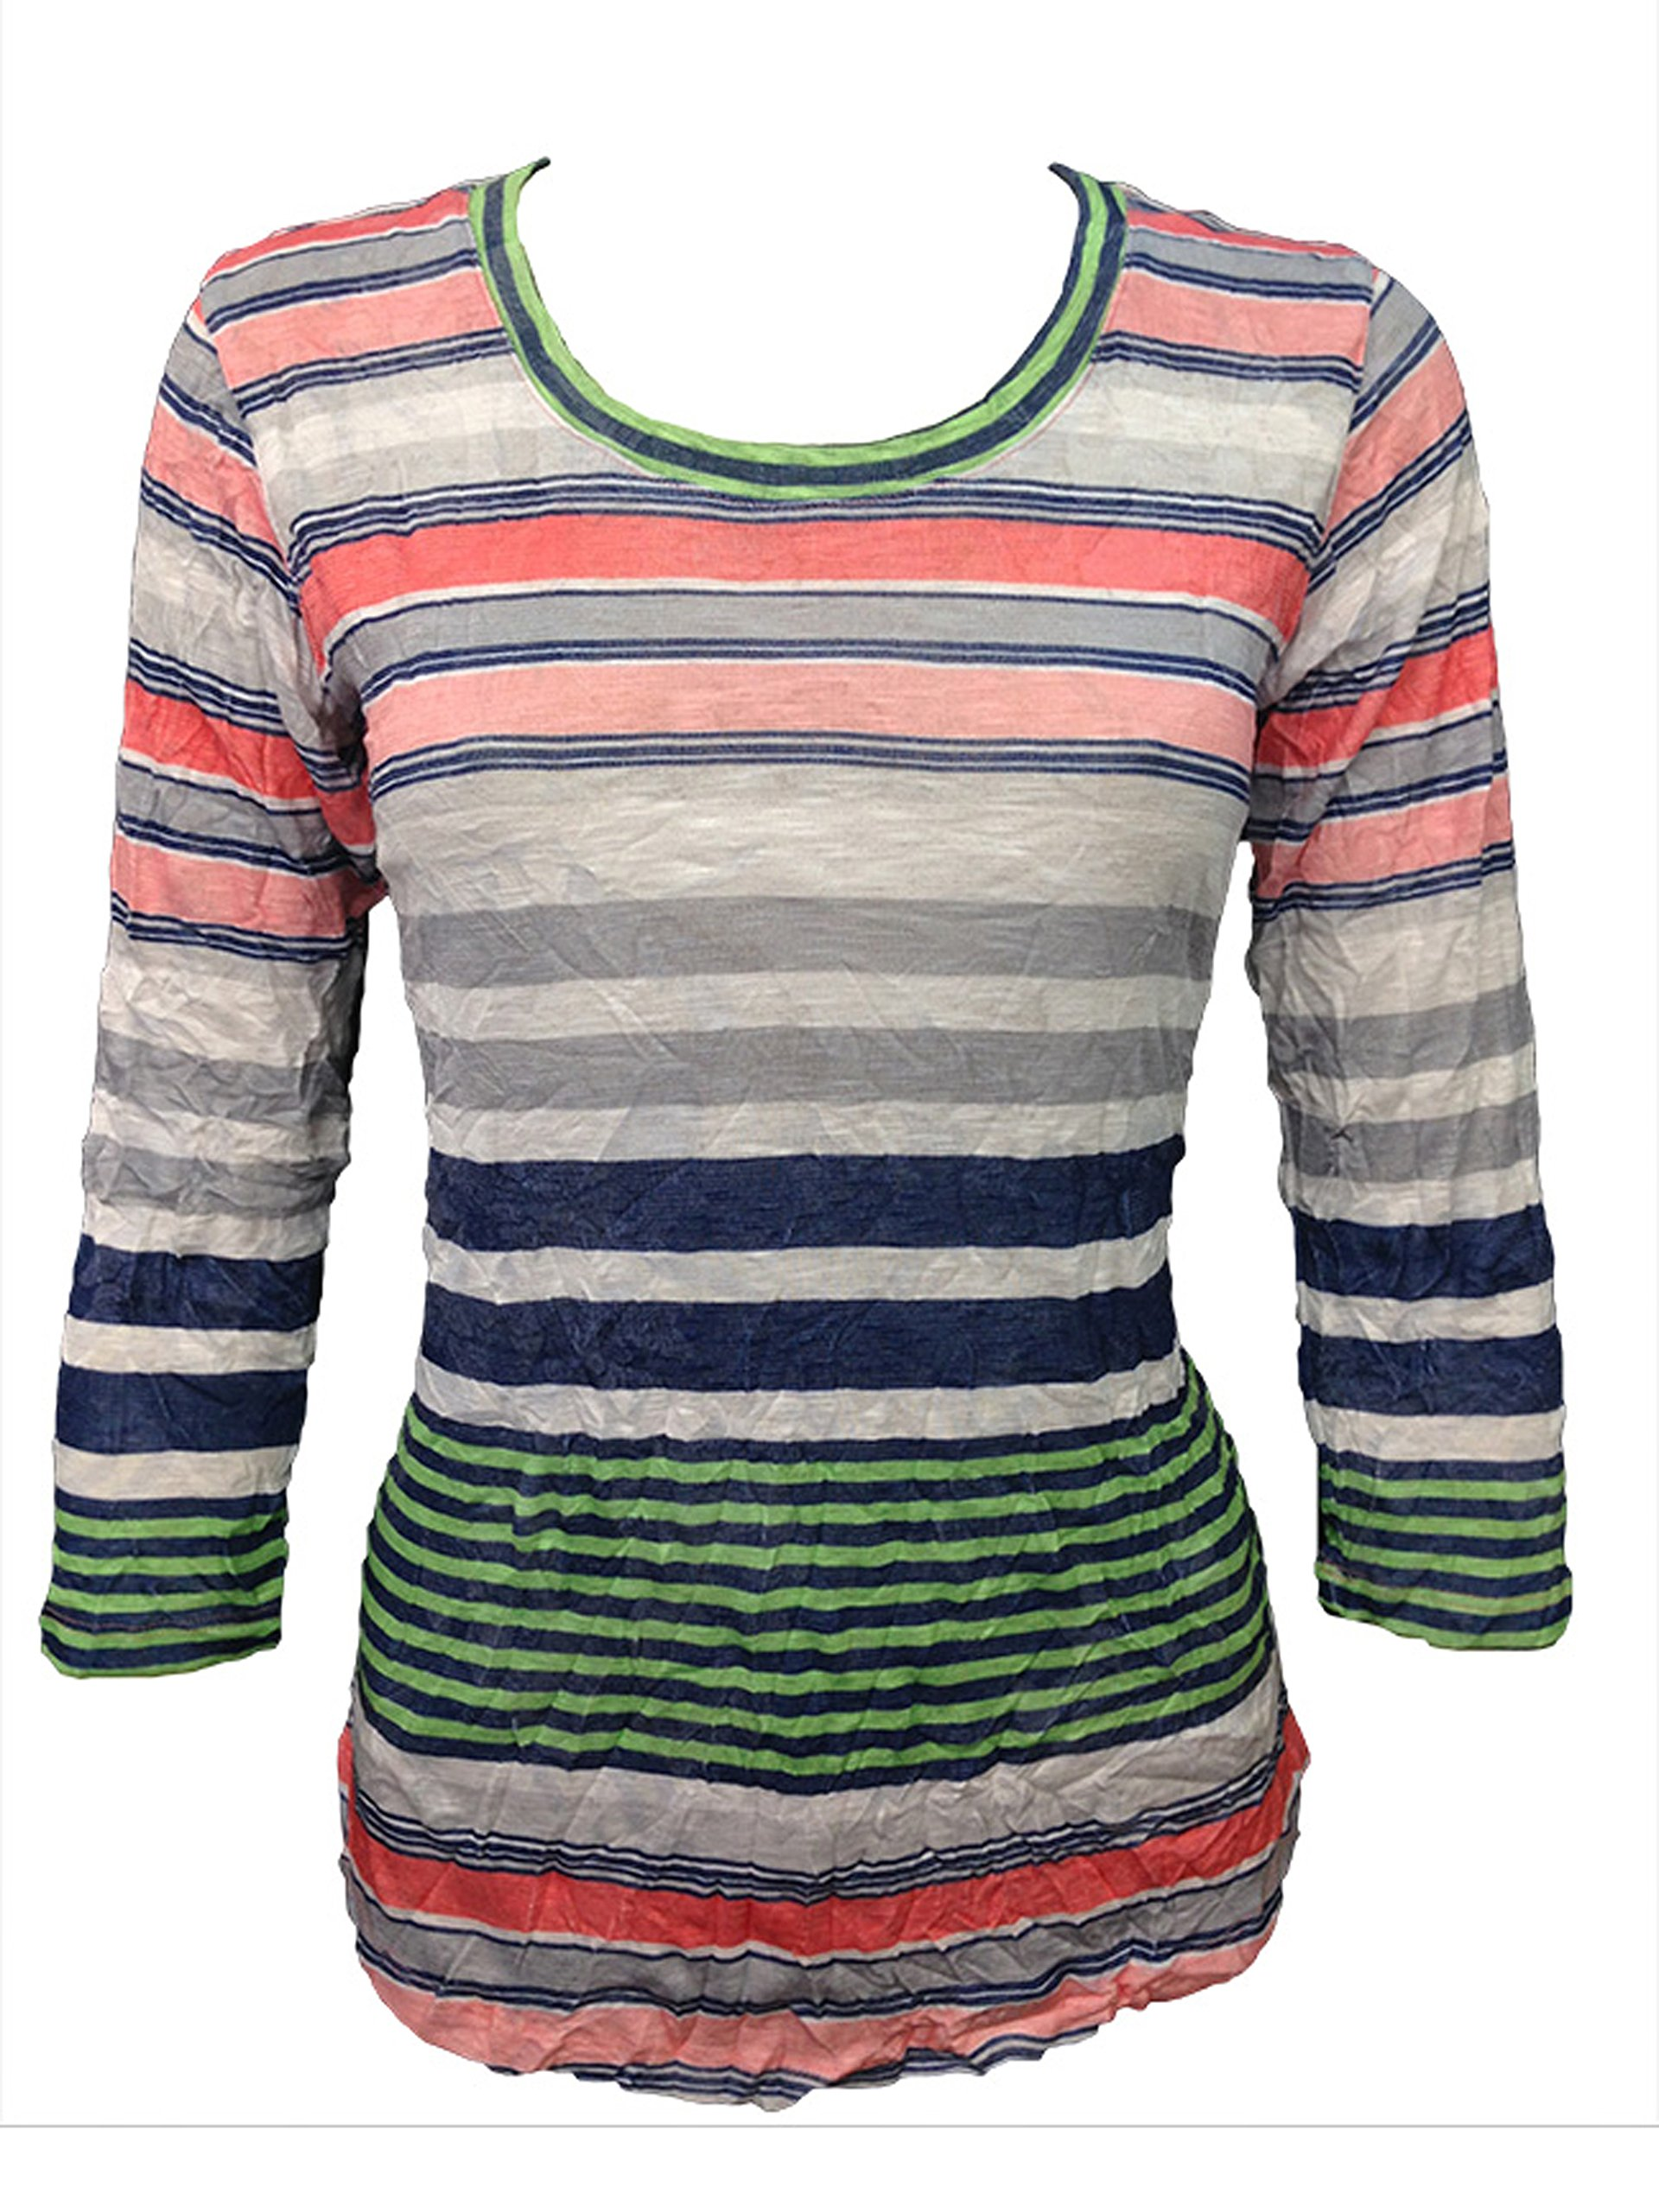 David Cline Woman's Crew-Neck Crushed Shirt. Super Soft Stretchy Fabric. Bright Design.